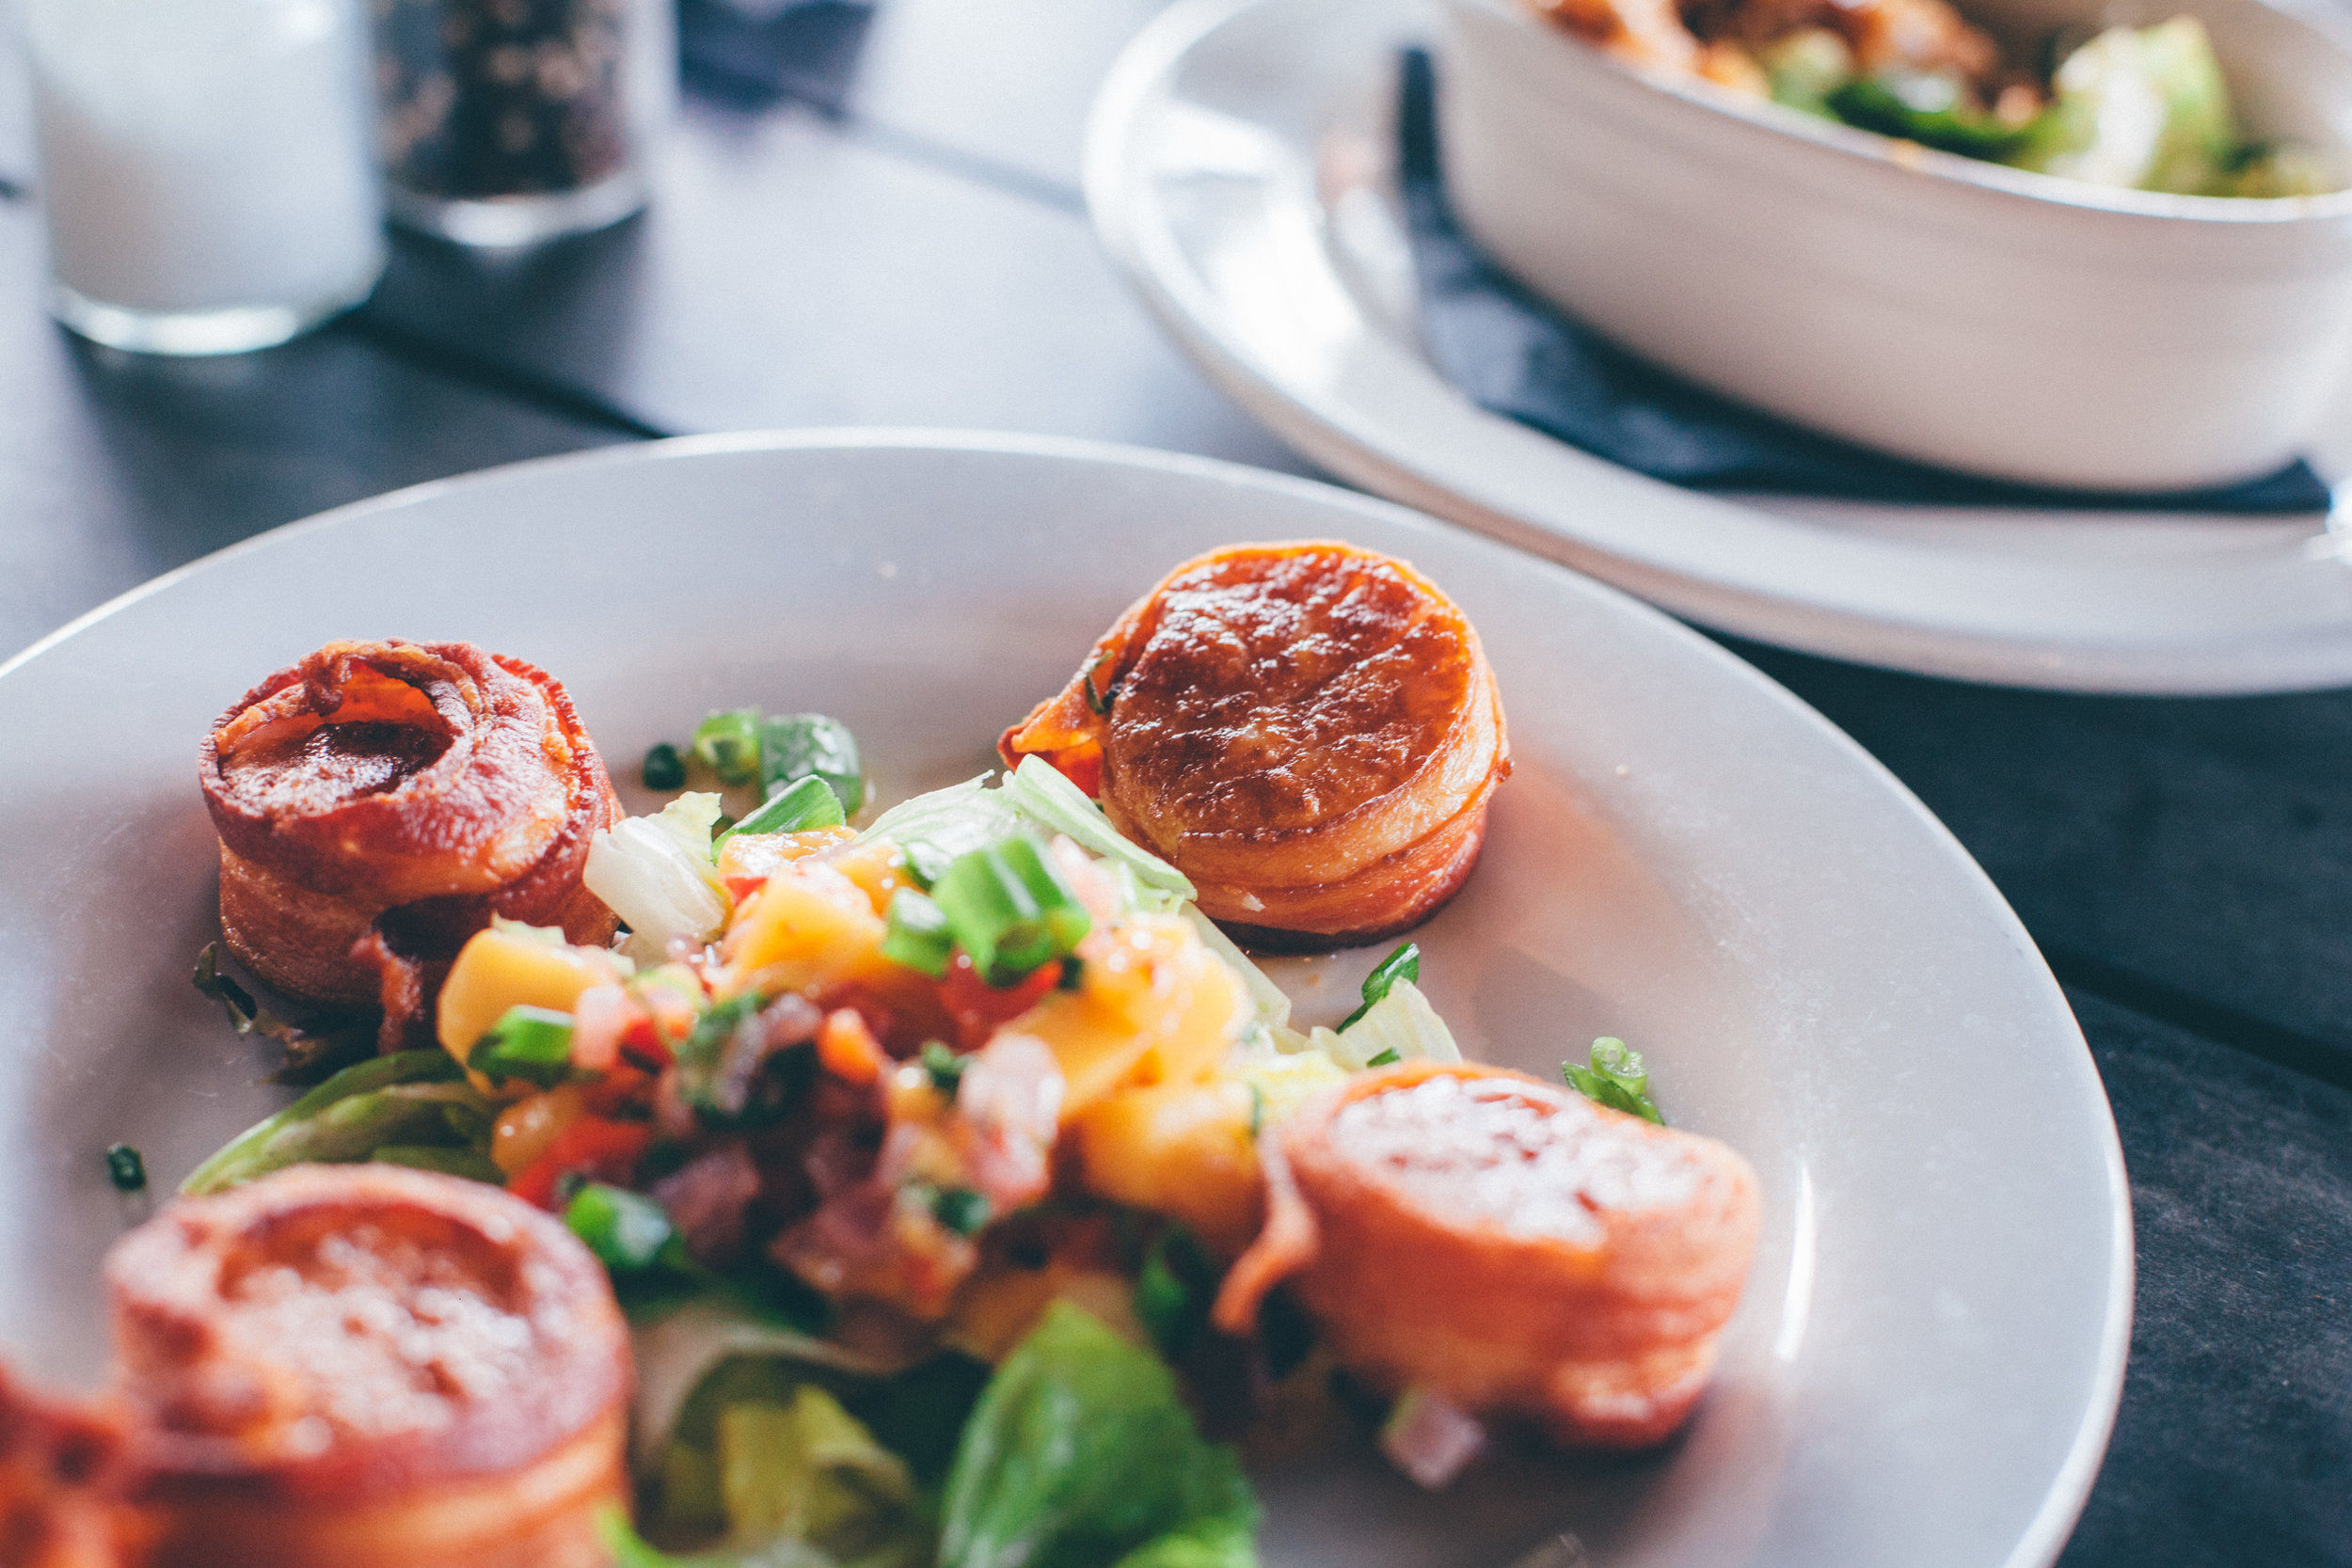 Applewood Bacon-Wrapped Scallops:Four Georges Bank Scallops wrapped in Applewood bacon and topped with mango salsa